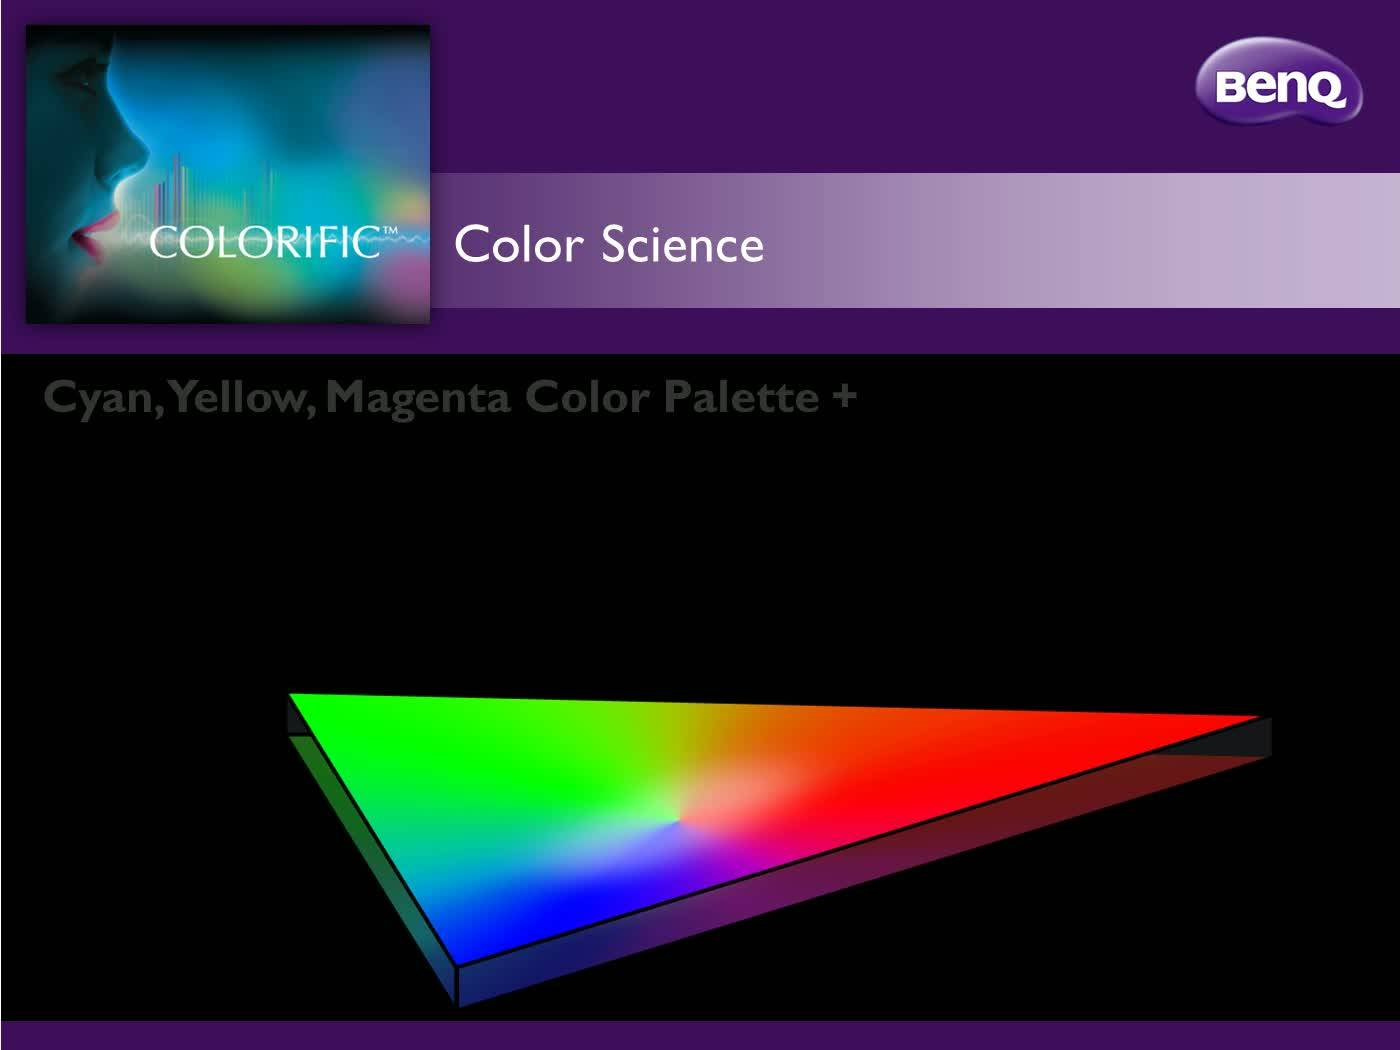 See Color Science in Action